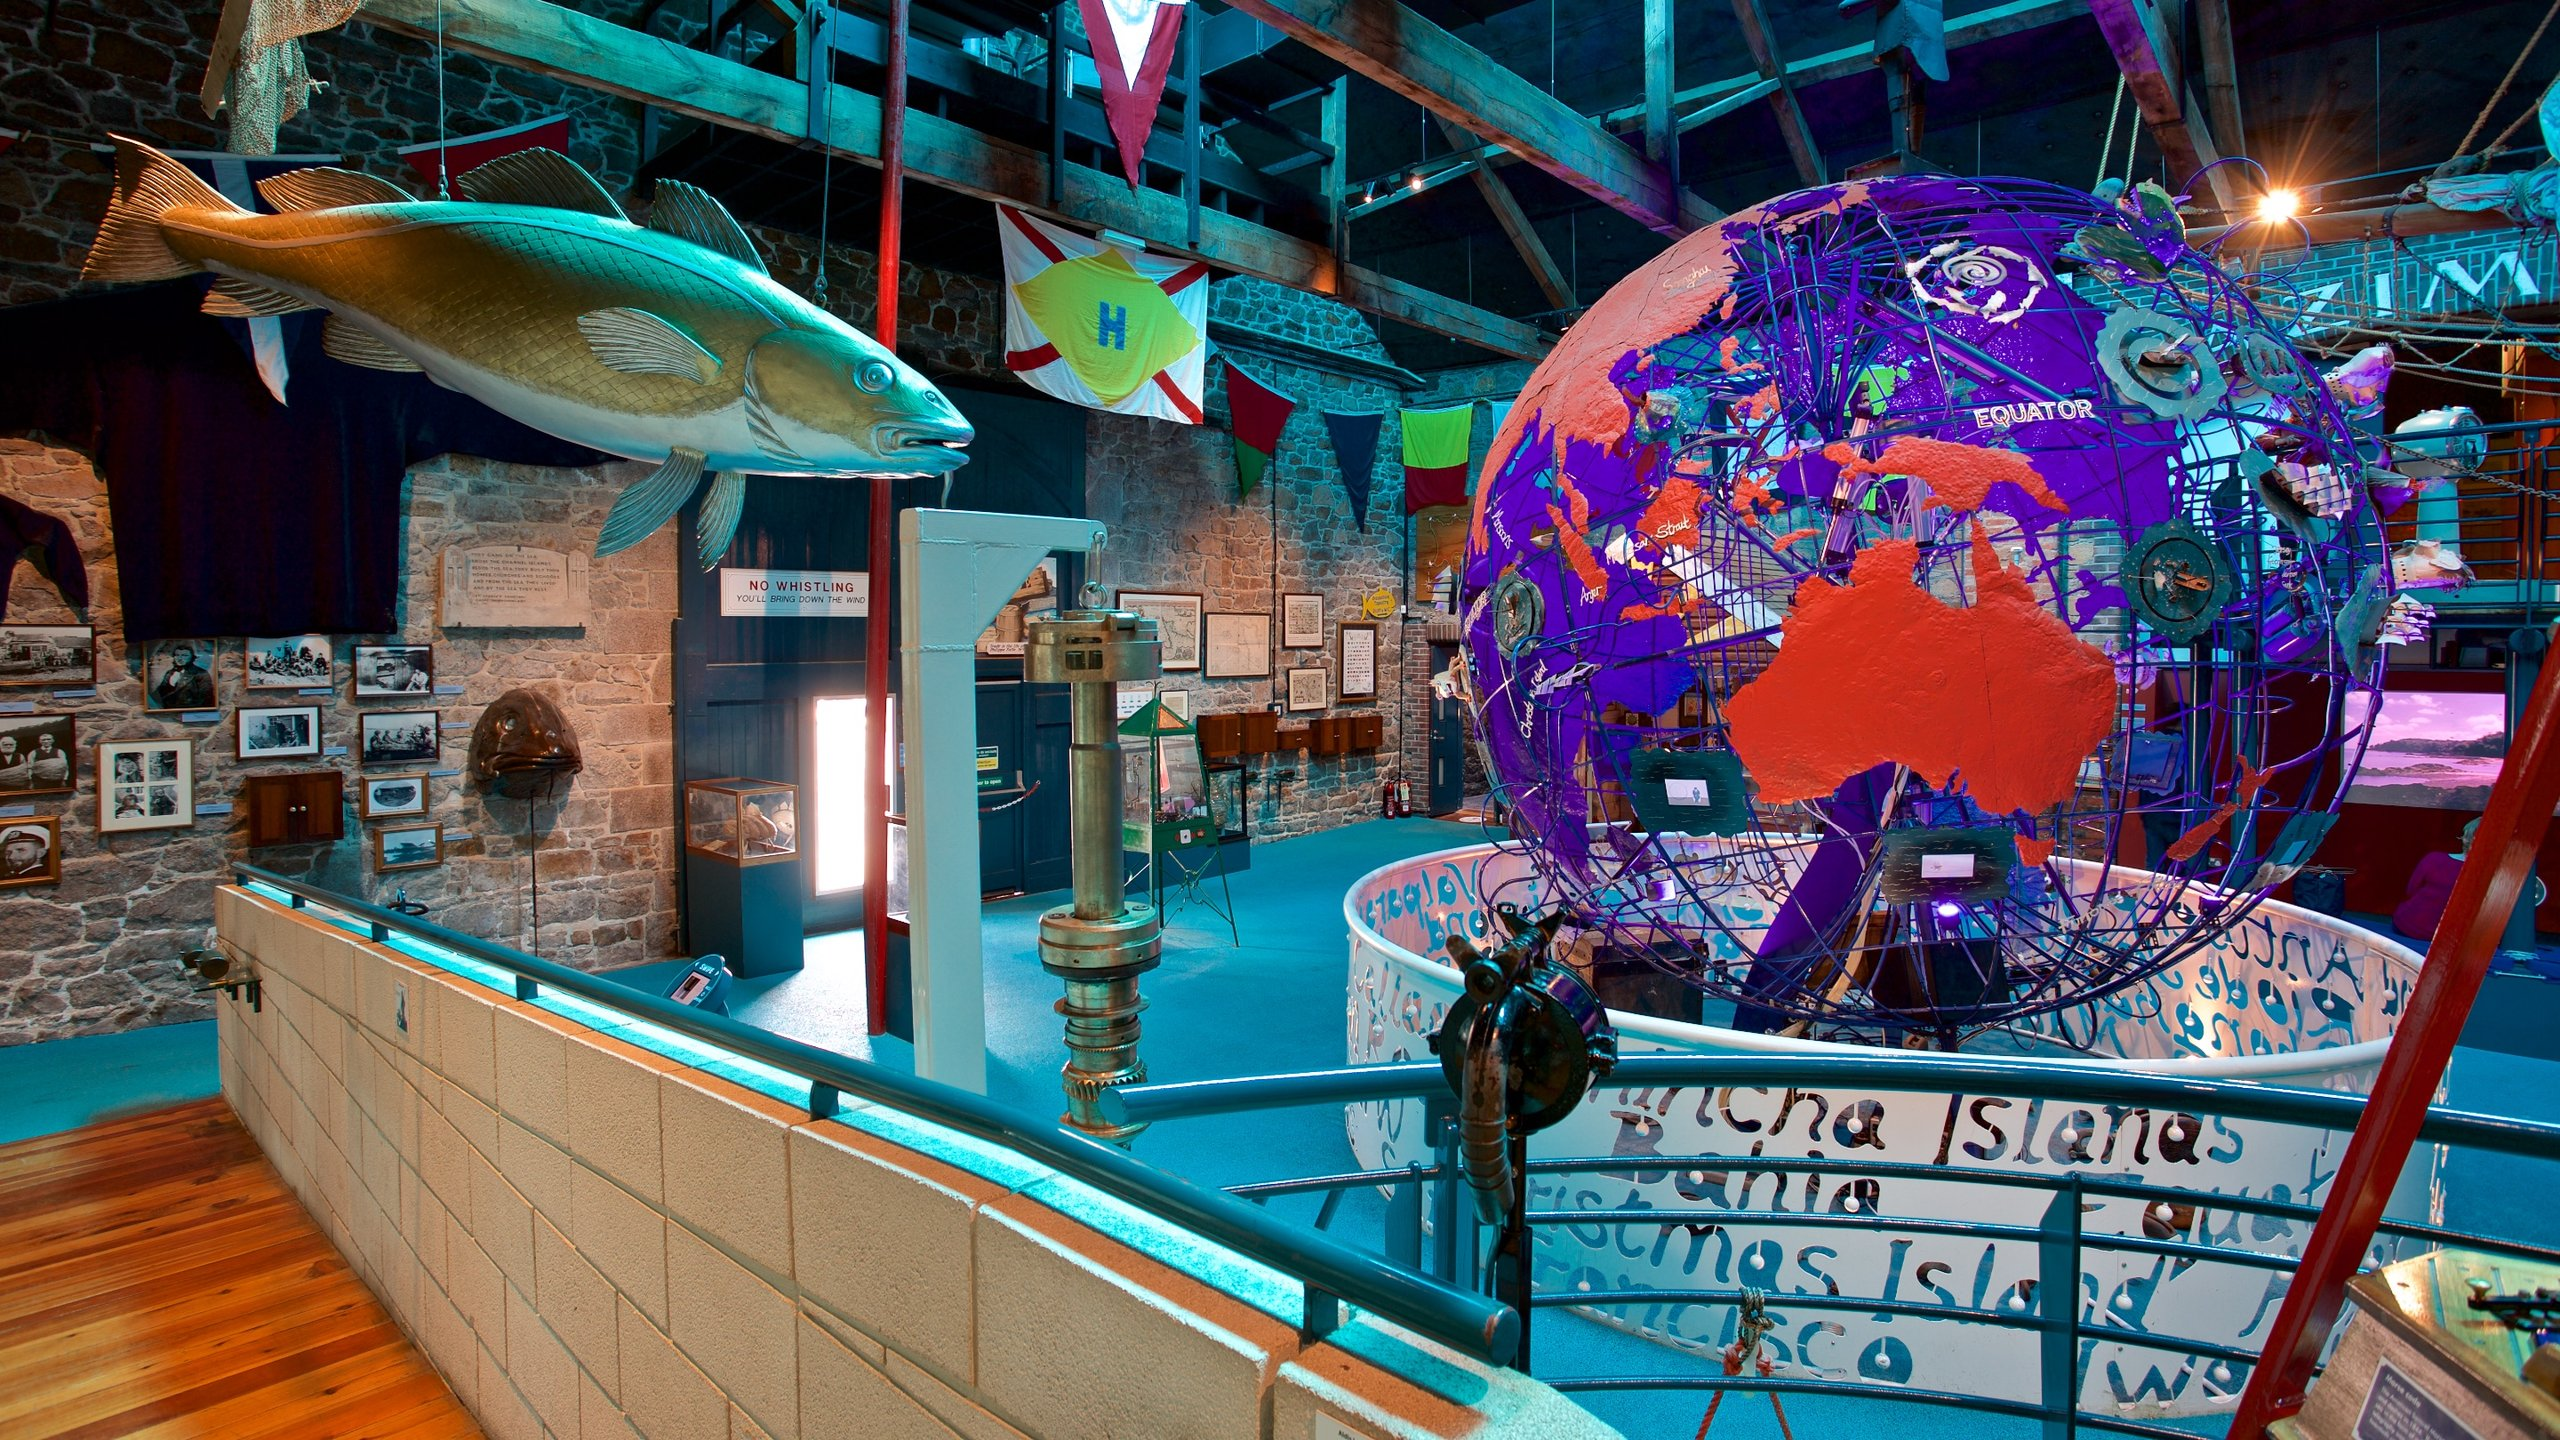 Based in granite warehouses overlooking St. Helier Marina, this museum brings legends and stories of the sea to life with colorful and fun exhibits.